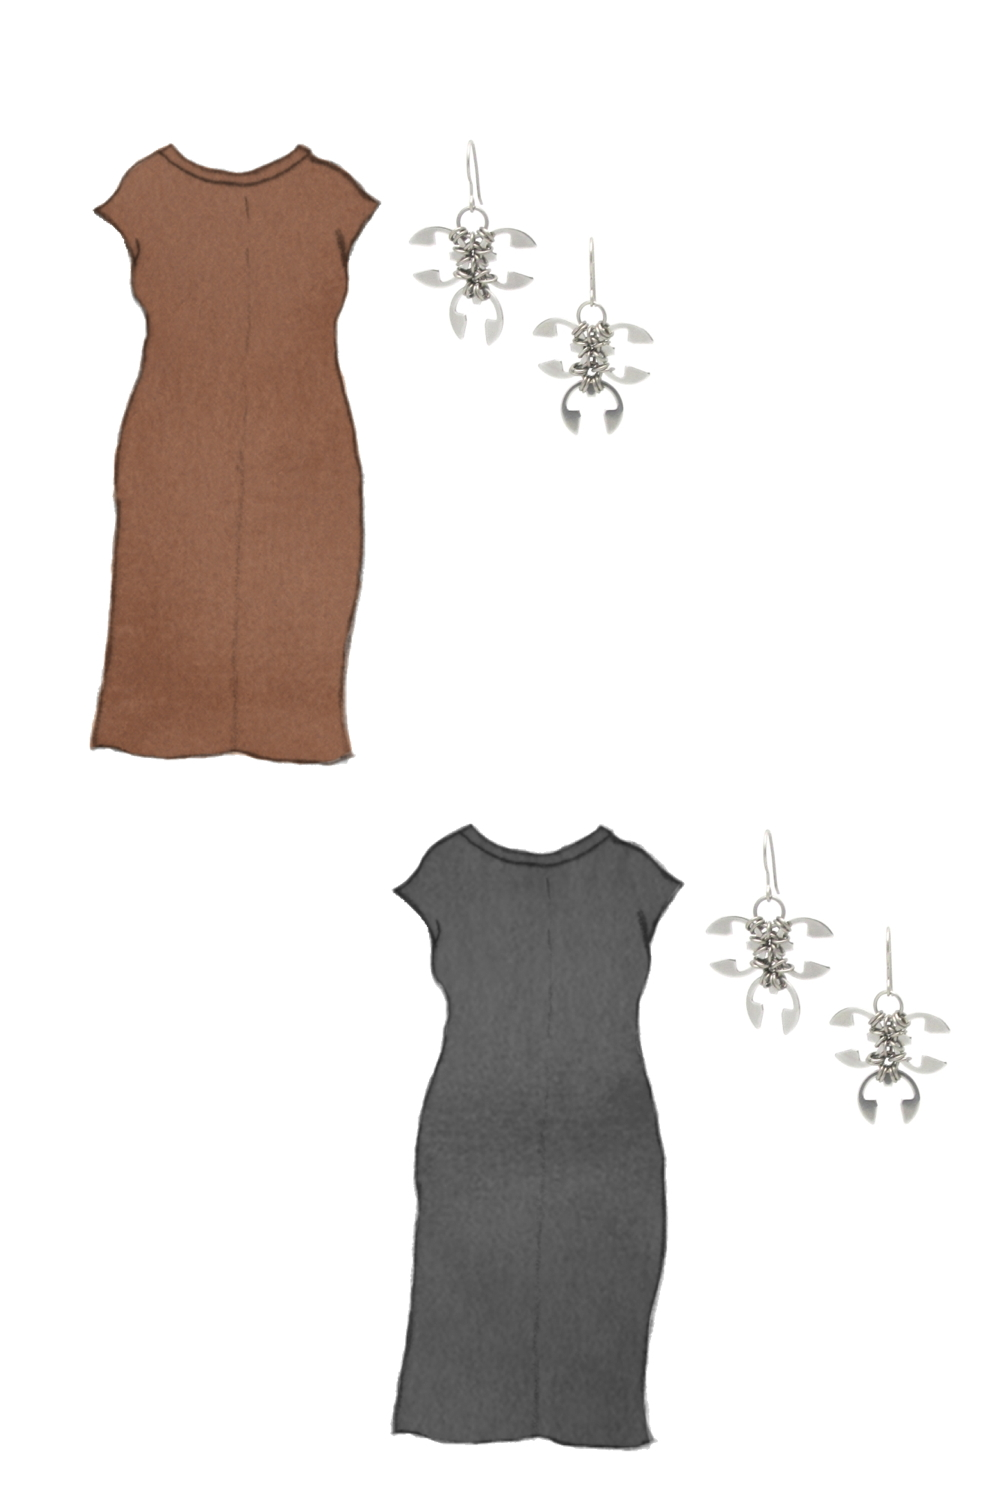 Style sketch of Everlane's Luxe Cotton Side-Slit Tee Dress in black and brown, with Wraptillion's Ivy Earrings (small spiky modern dangles).